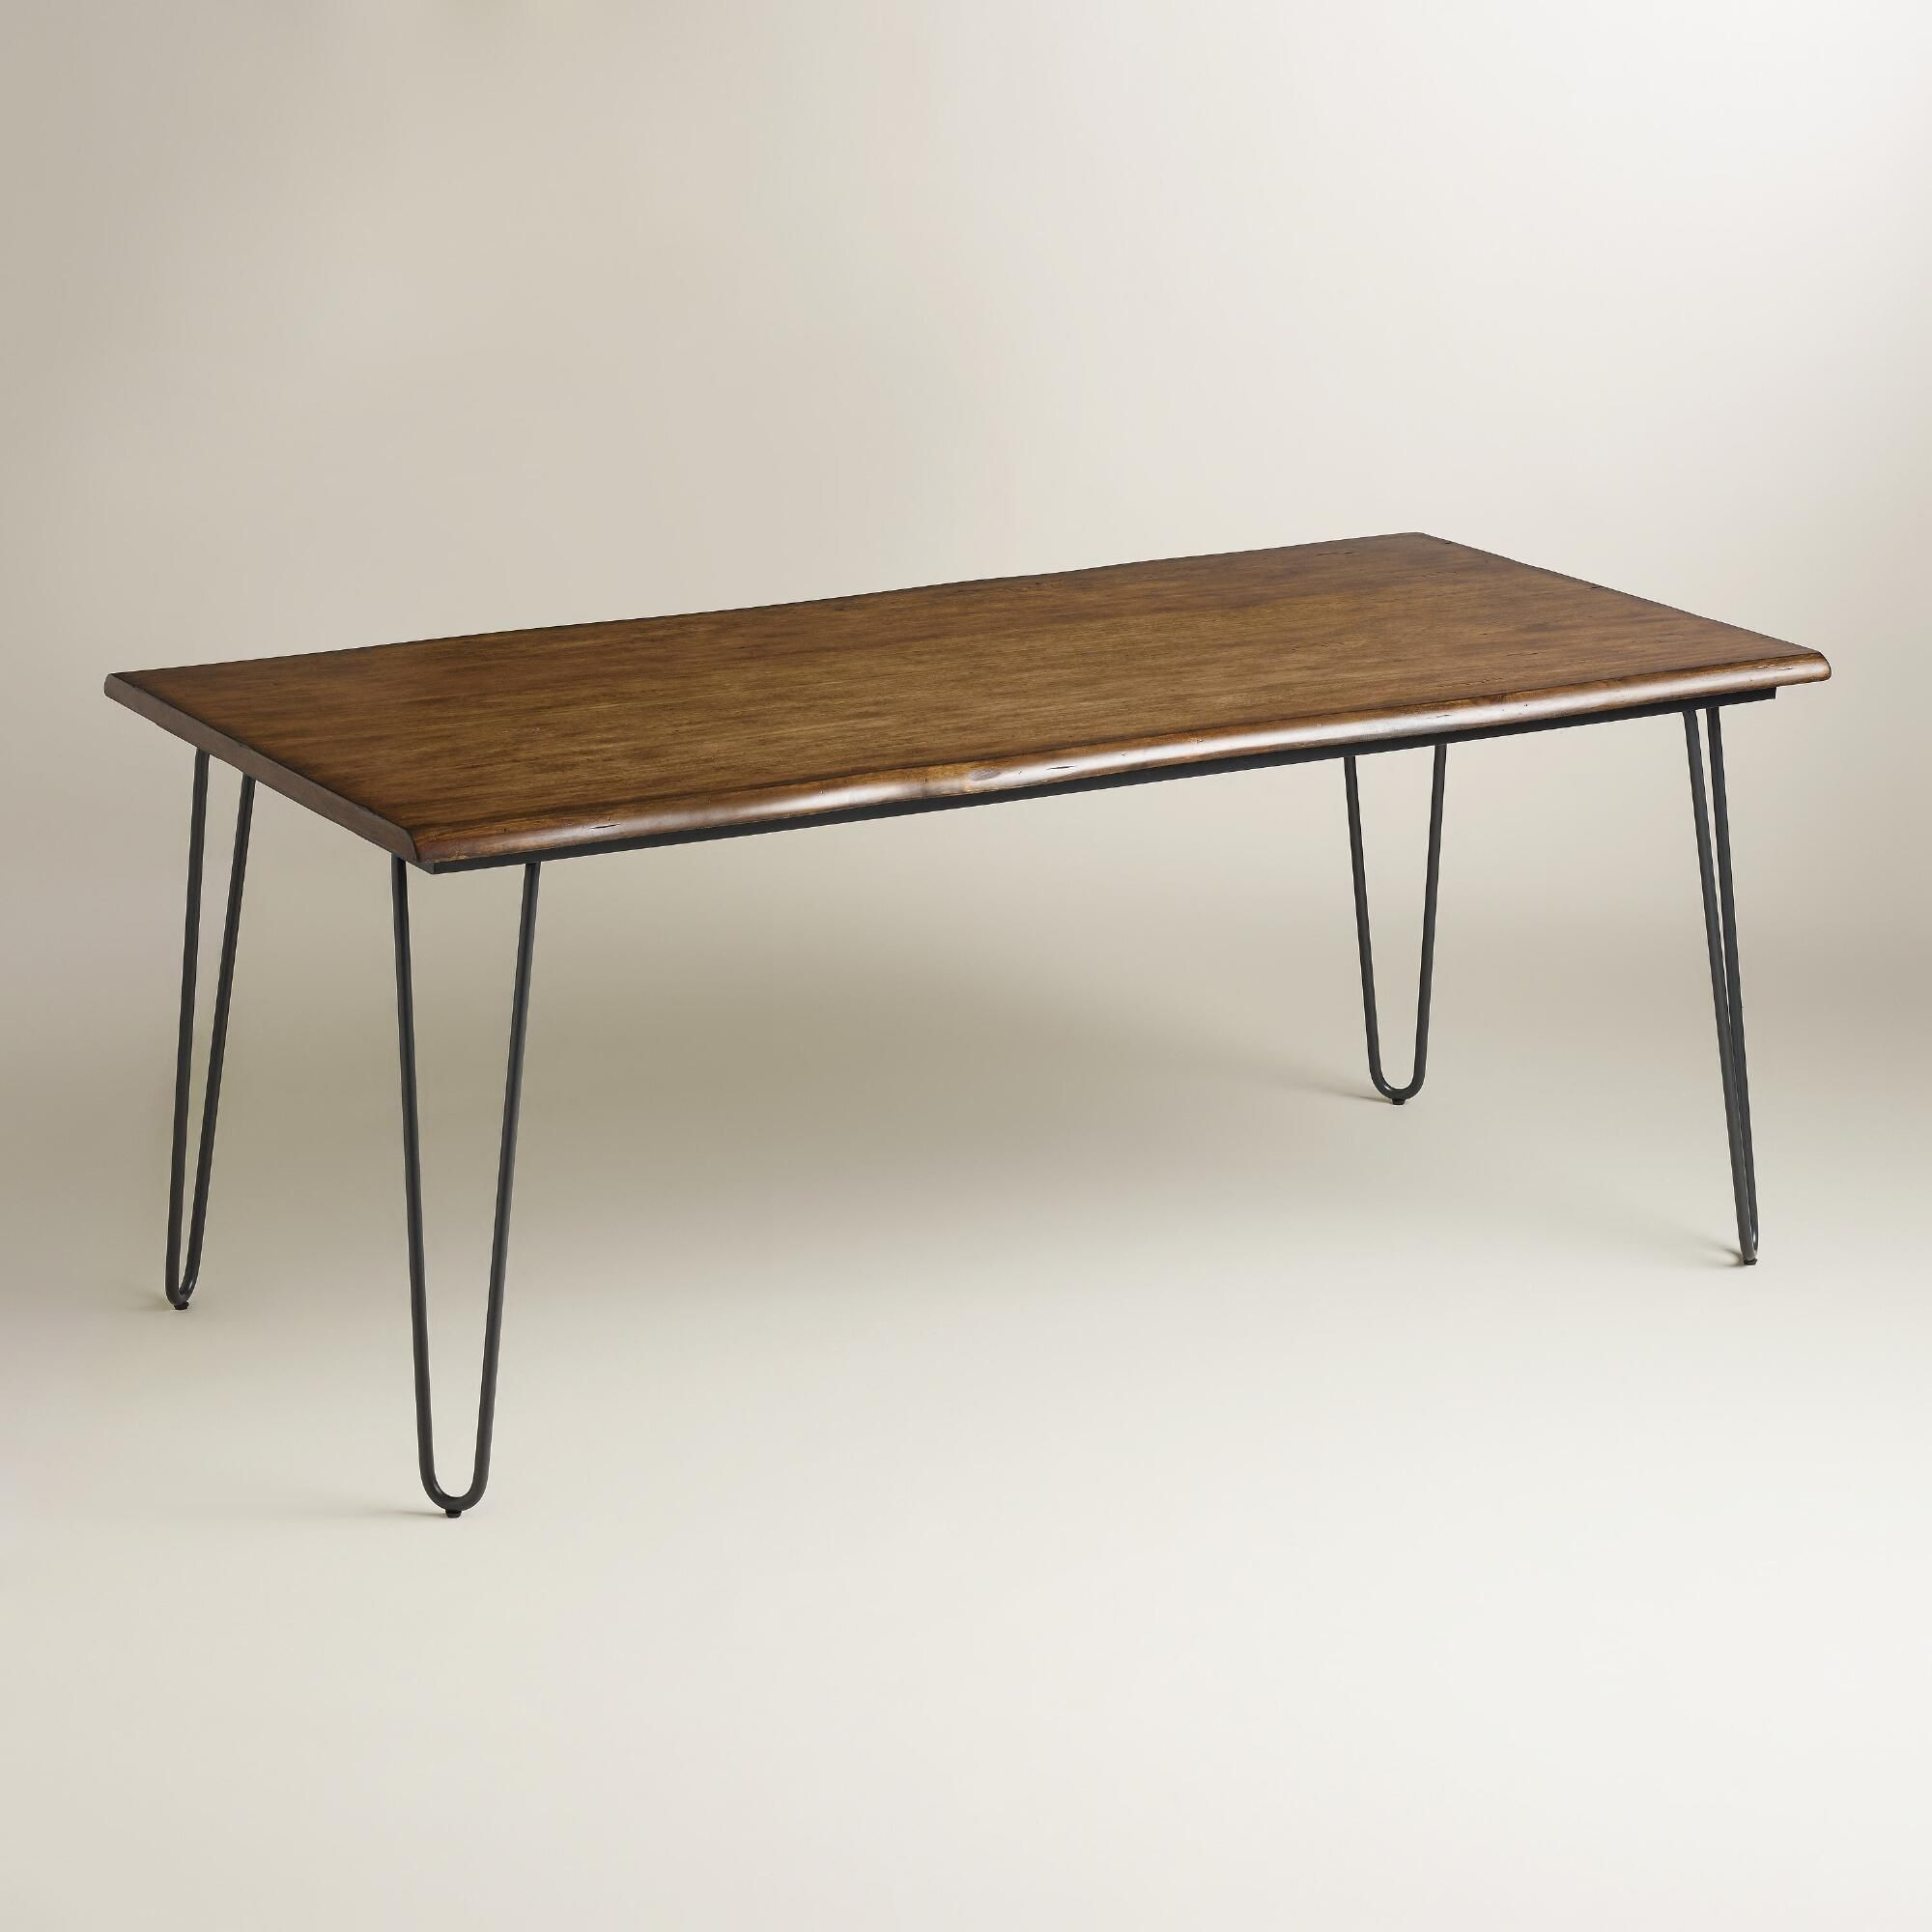 Wood flynn hairpin dining table cleaning wood grain and for Plywood table hairpin legs